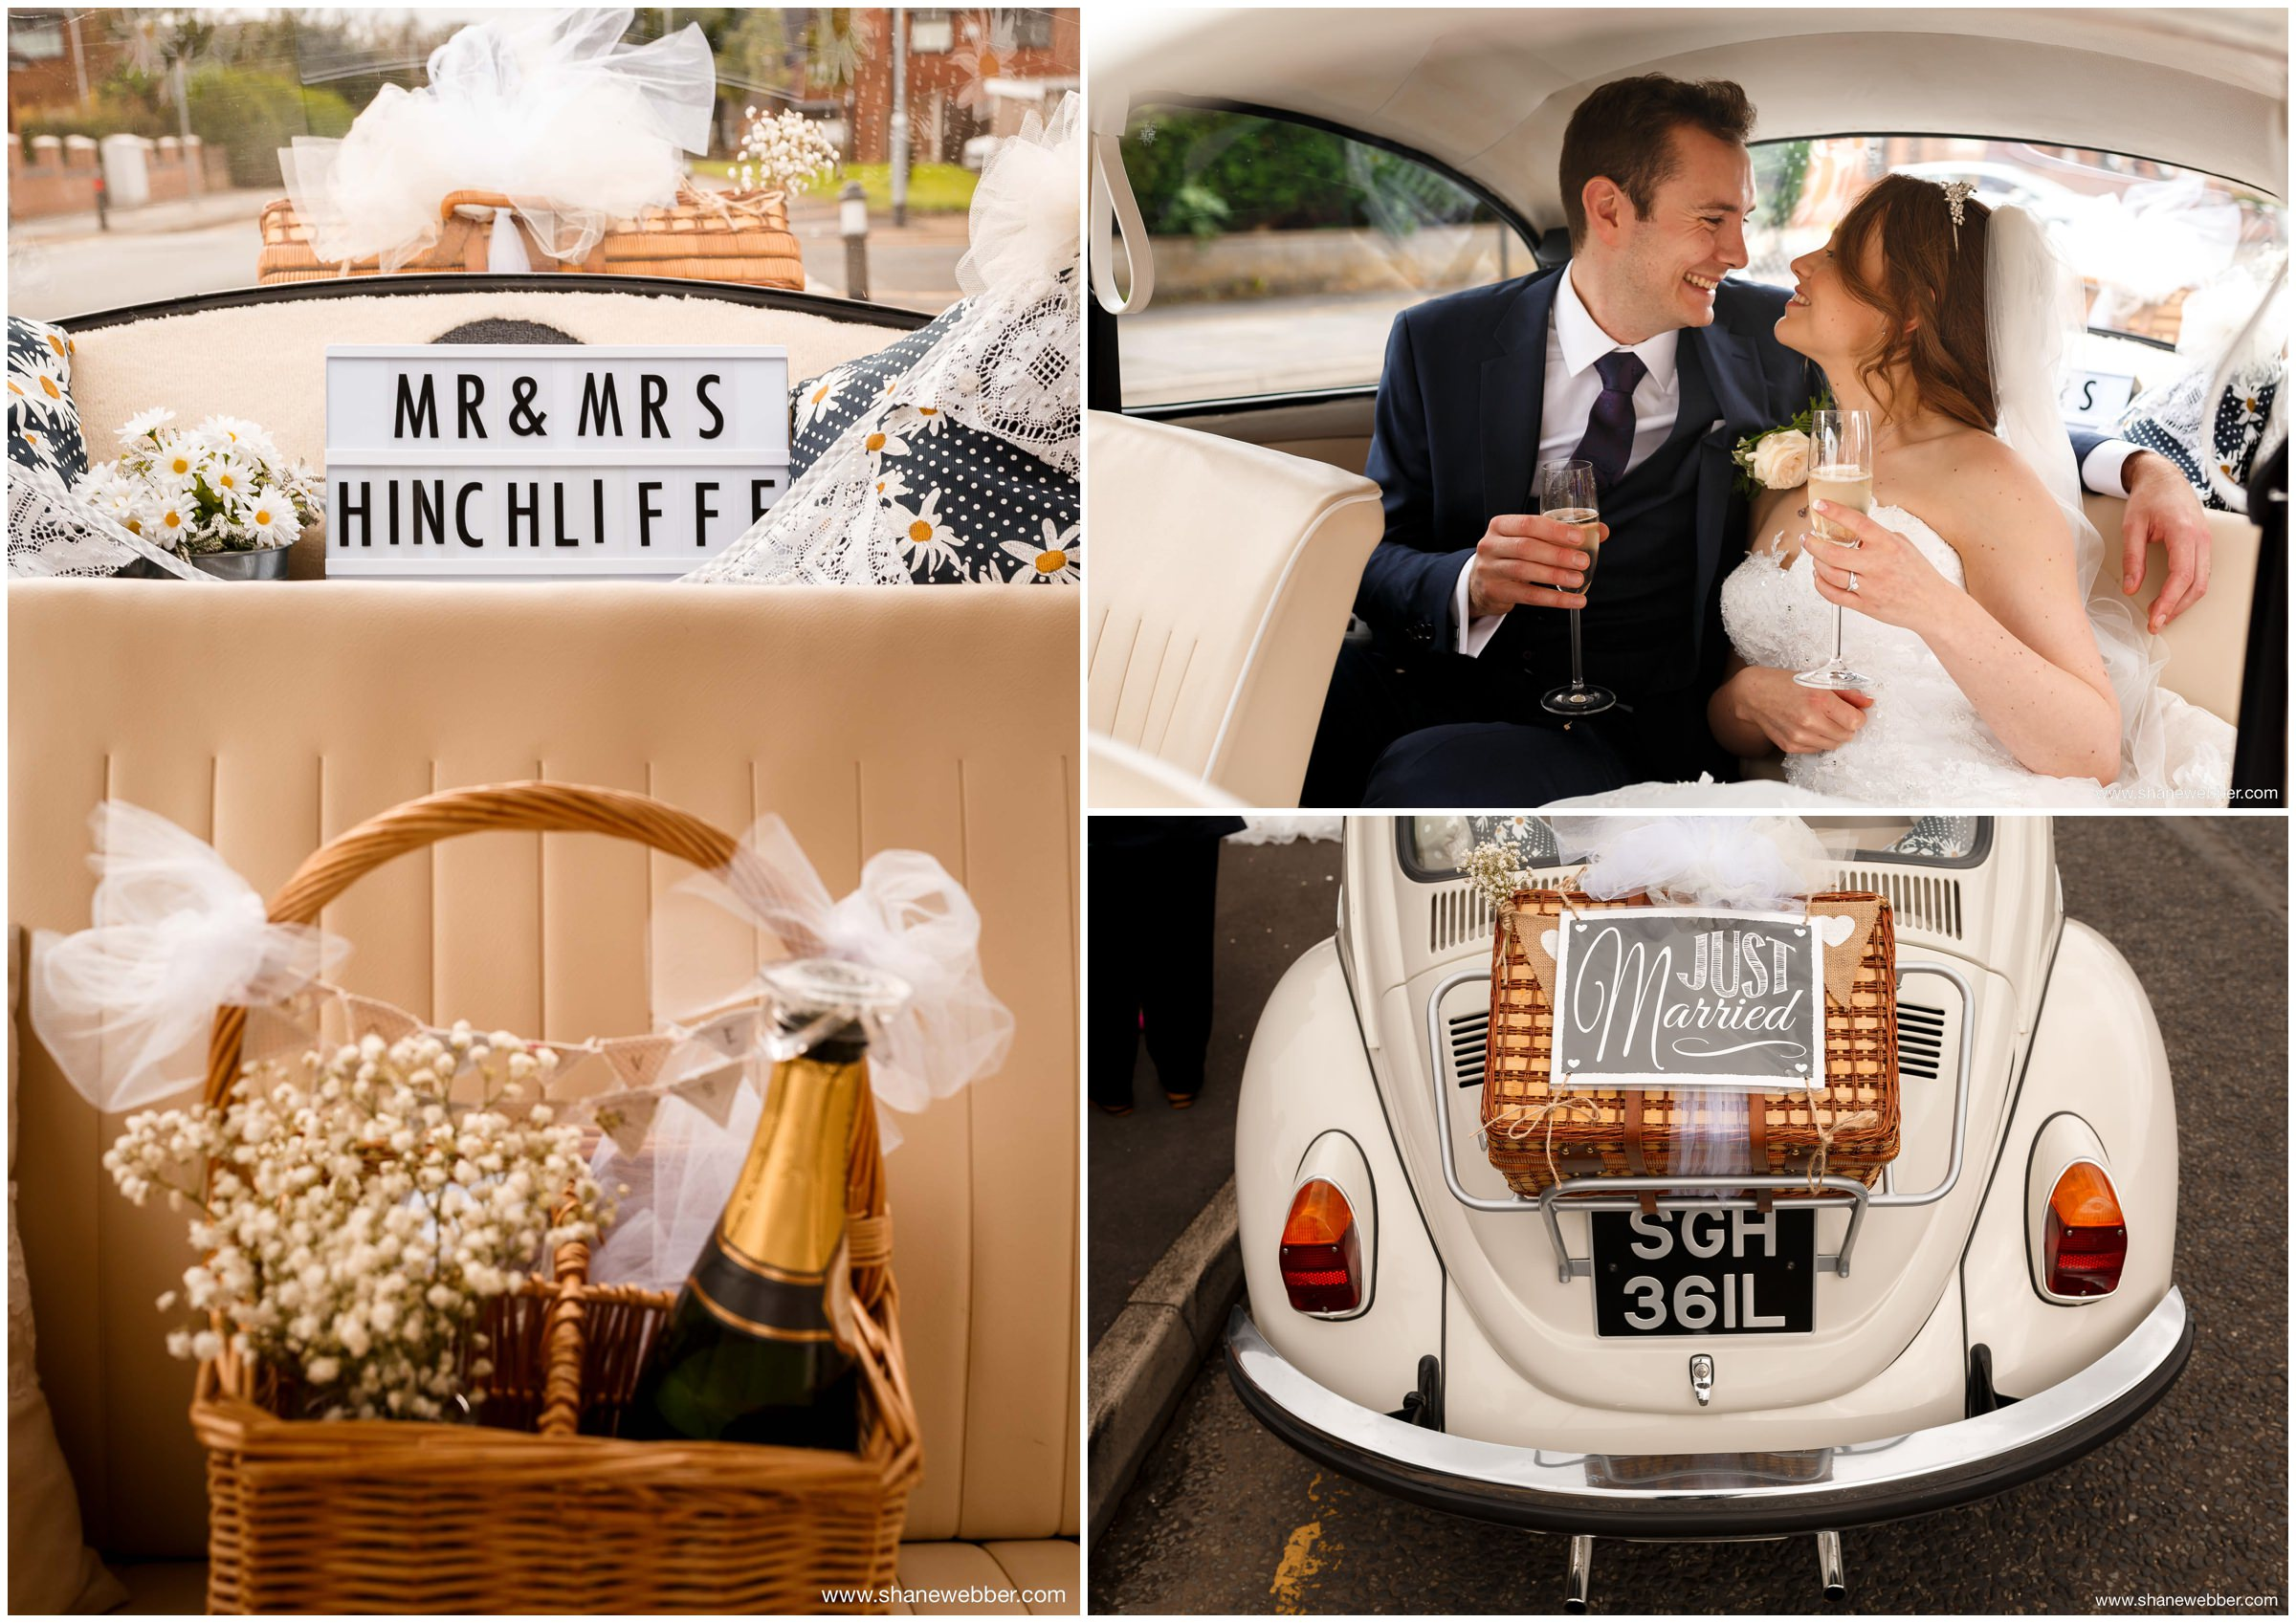 Vintage VW Beetle wedding car